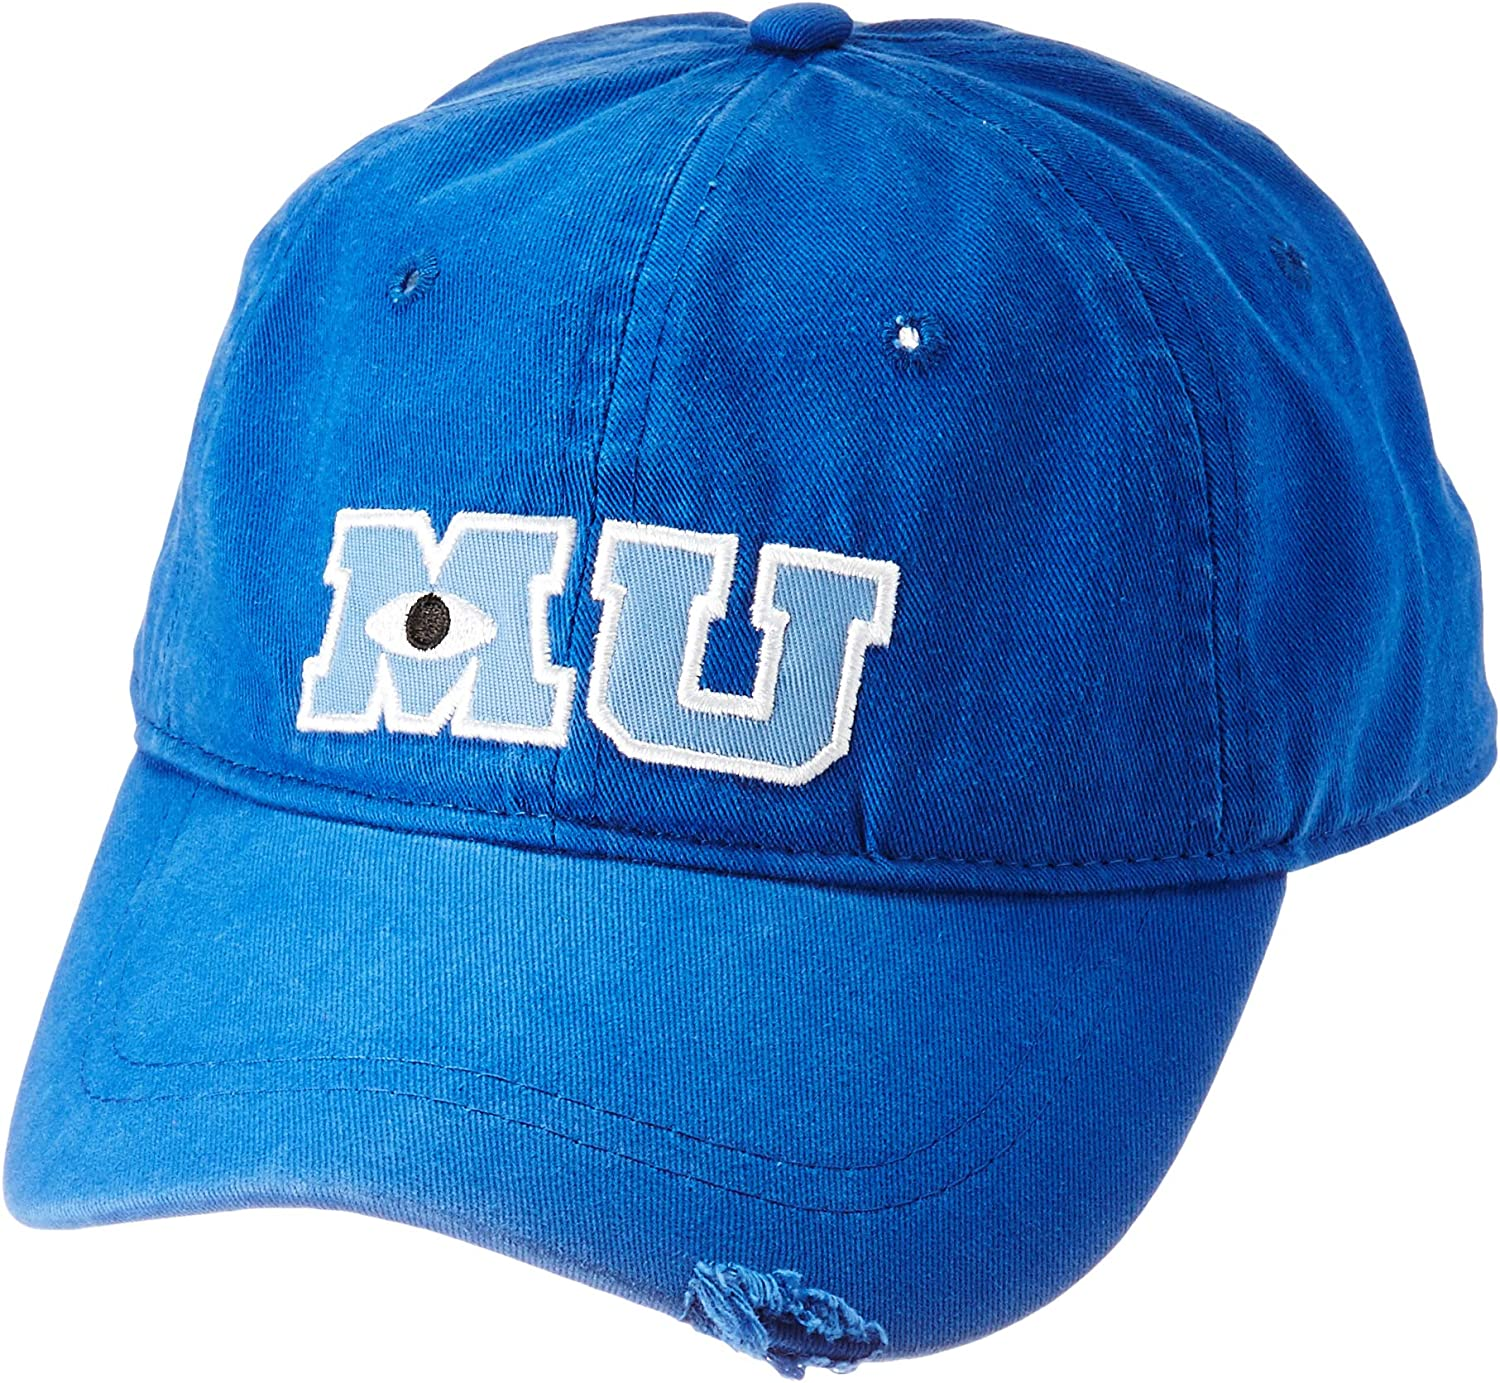 Disney Pixar Monsters University Adjustable Snapback Hat Cap ...